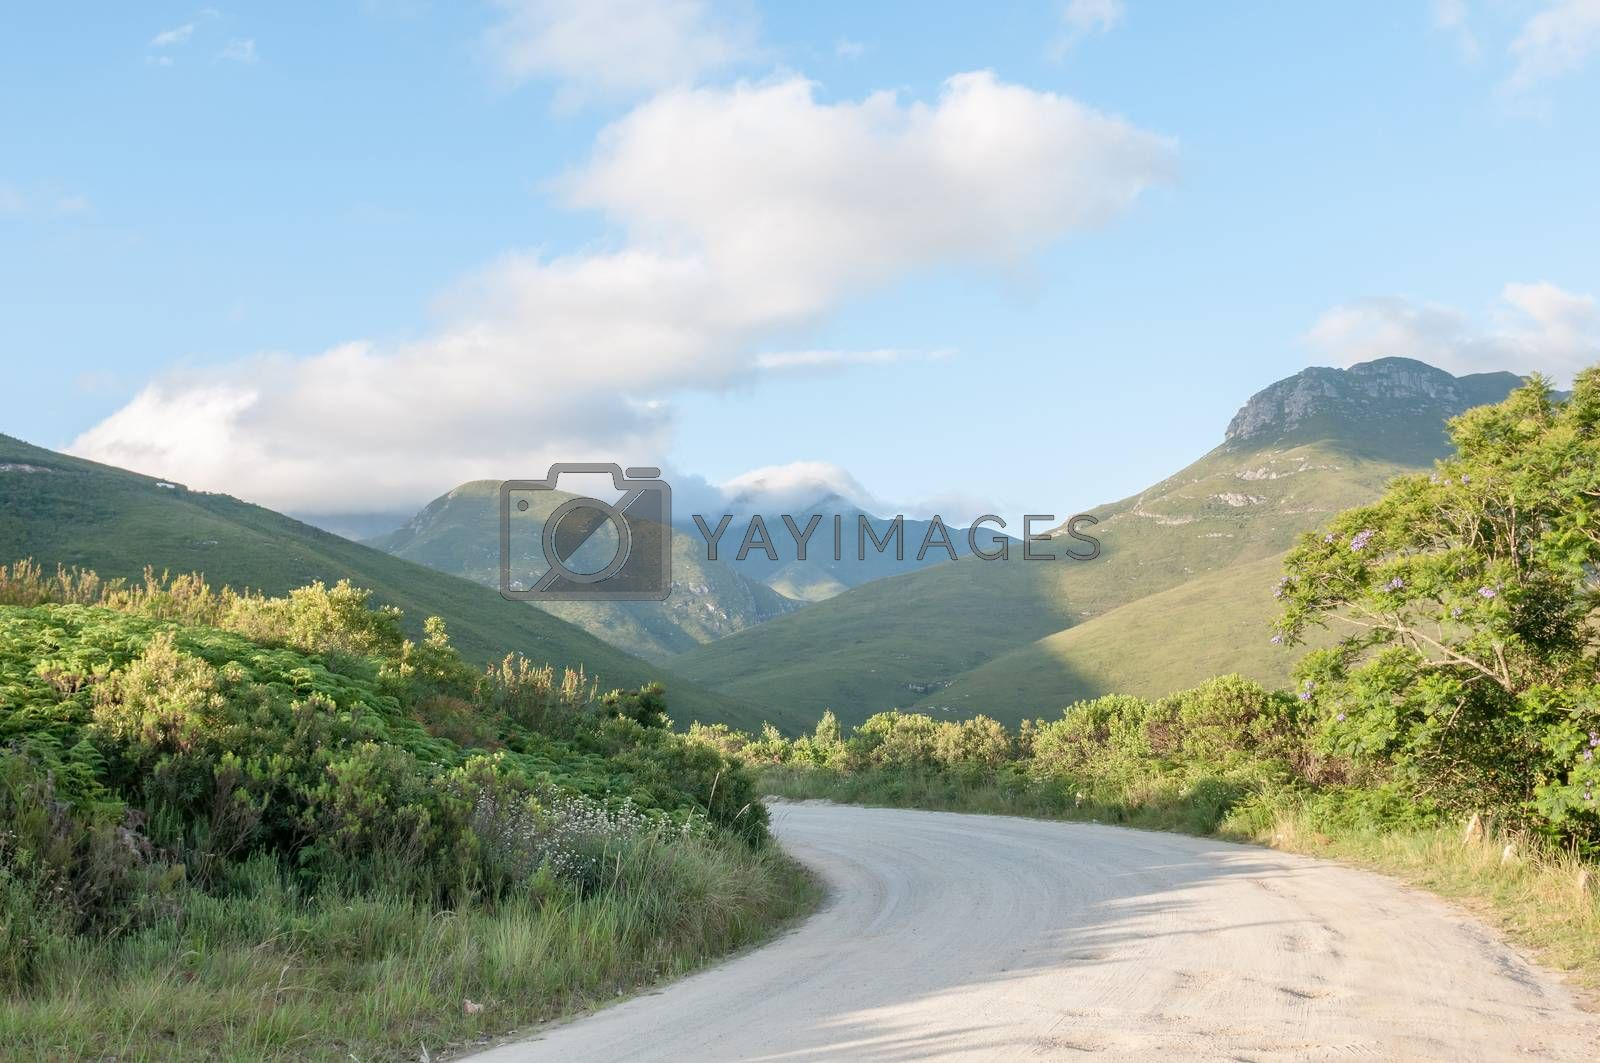 Royalty free image of Montagu Pass by dpreezg